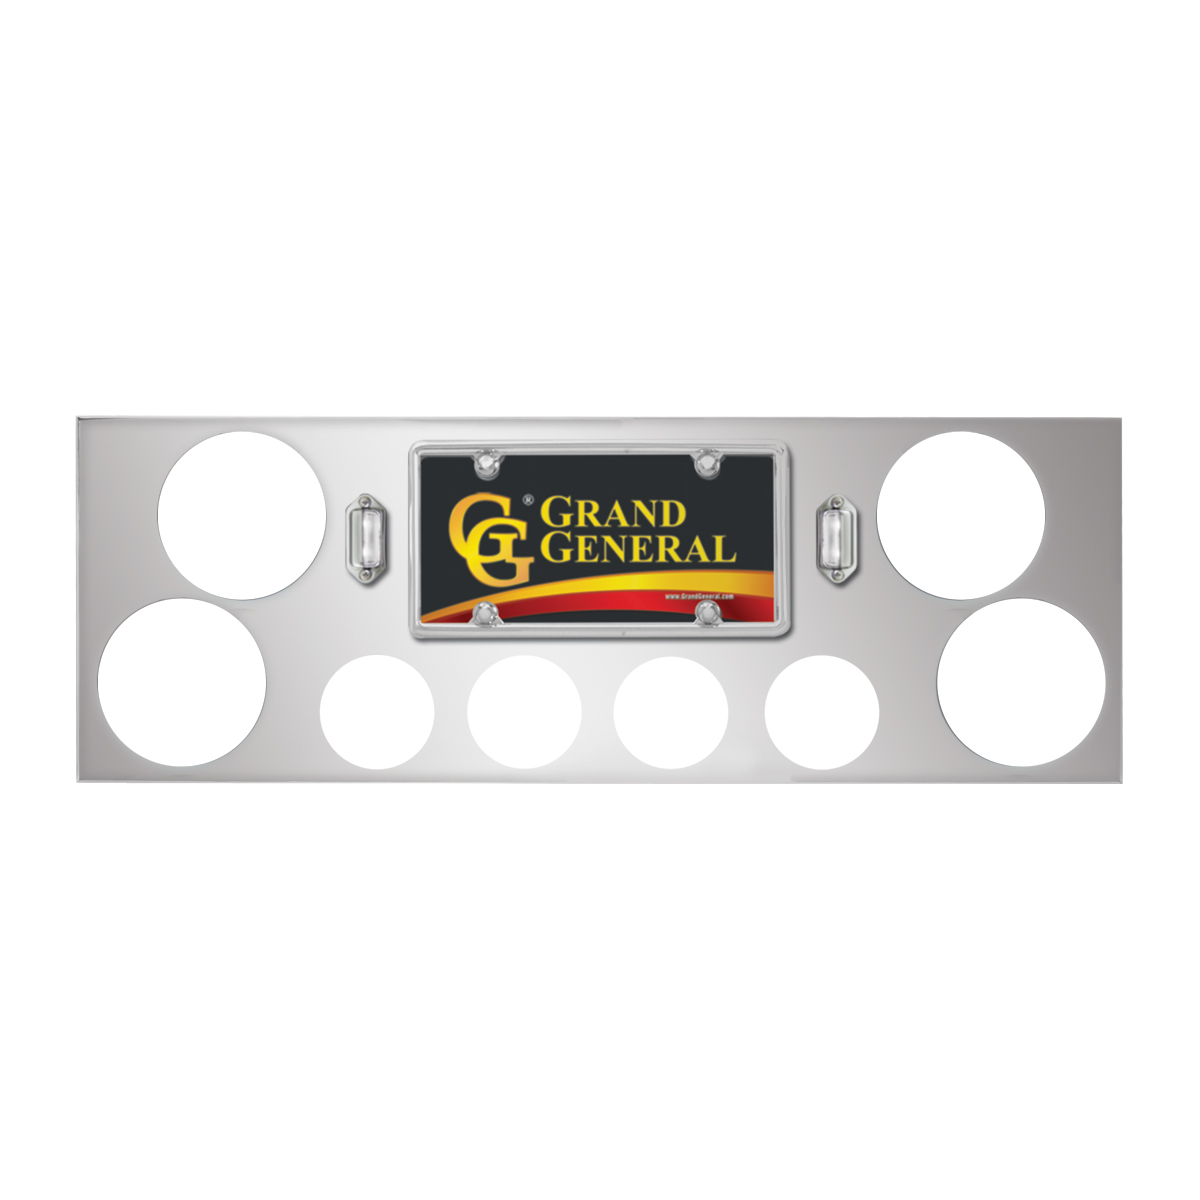 #91919 Stainless Steel Panel Only